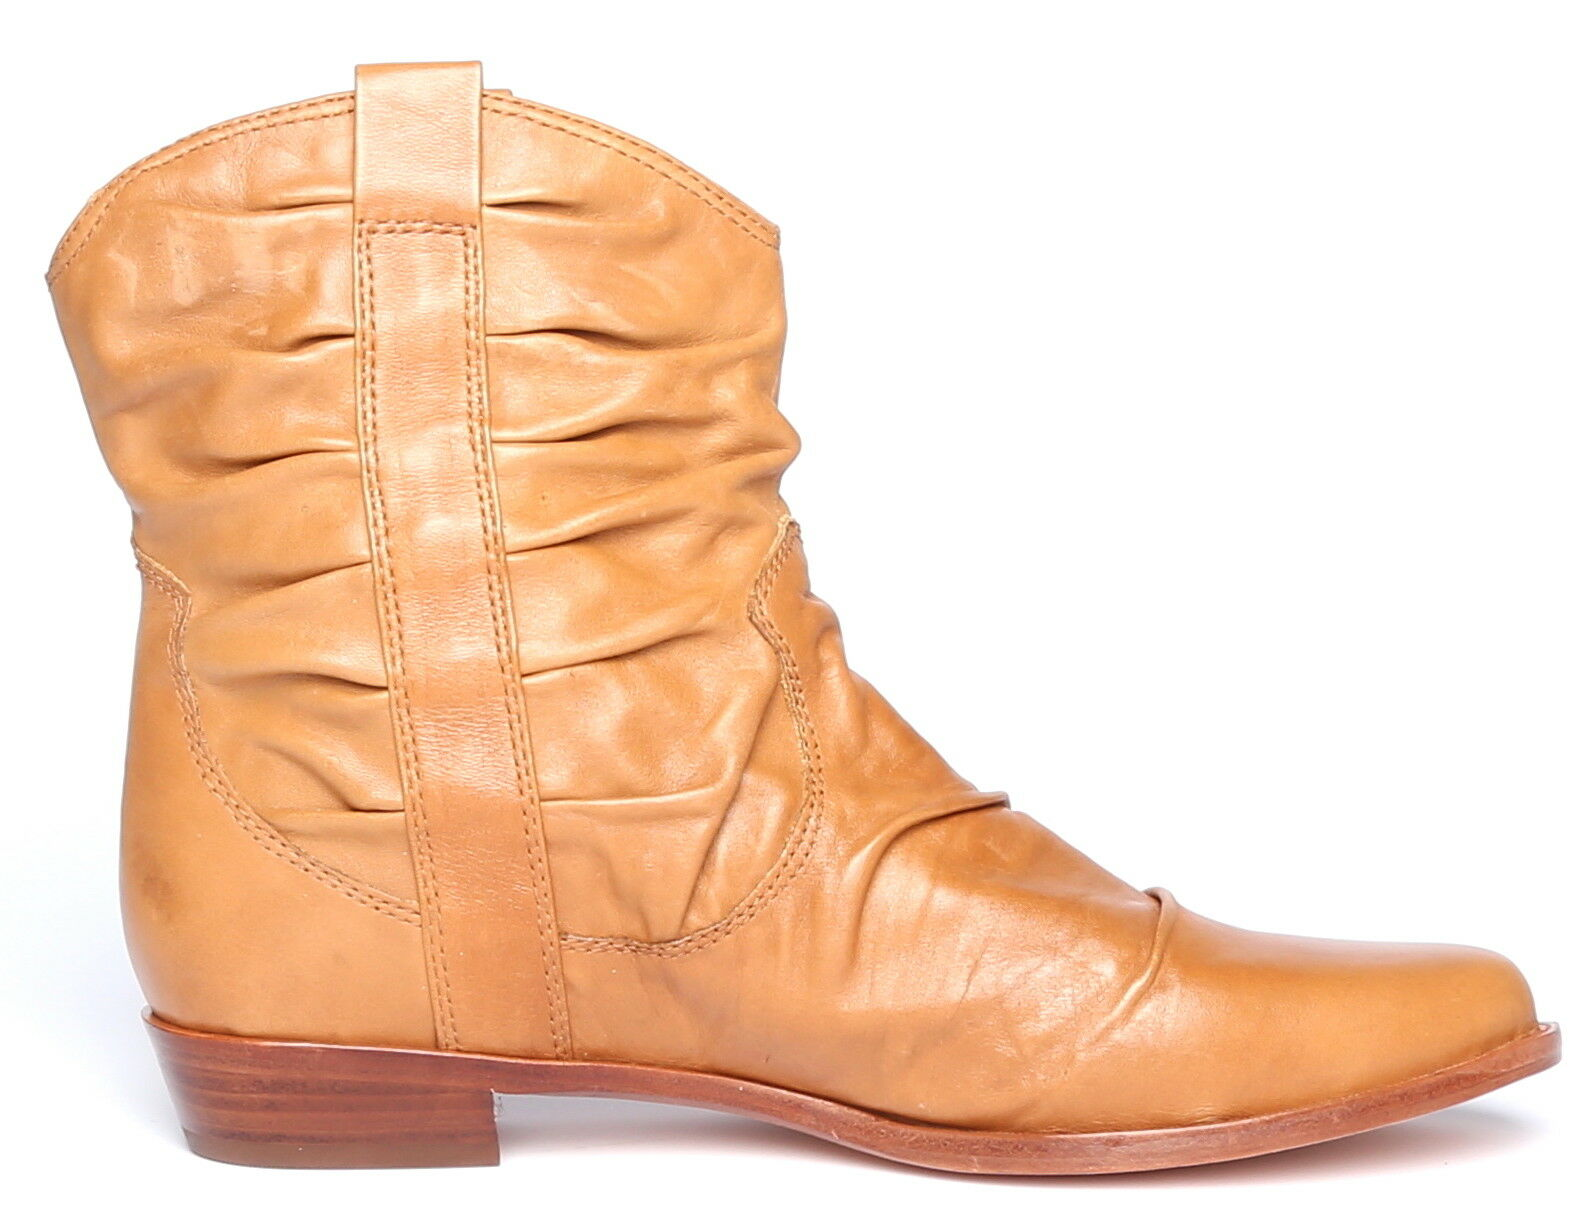 Corso Como Womens Whiskey Starr Leather Leather Leather Slouchy Short Boots Sz 10 9148 c918fd